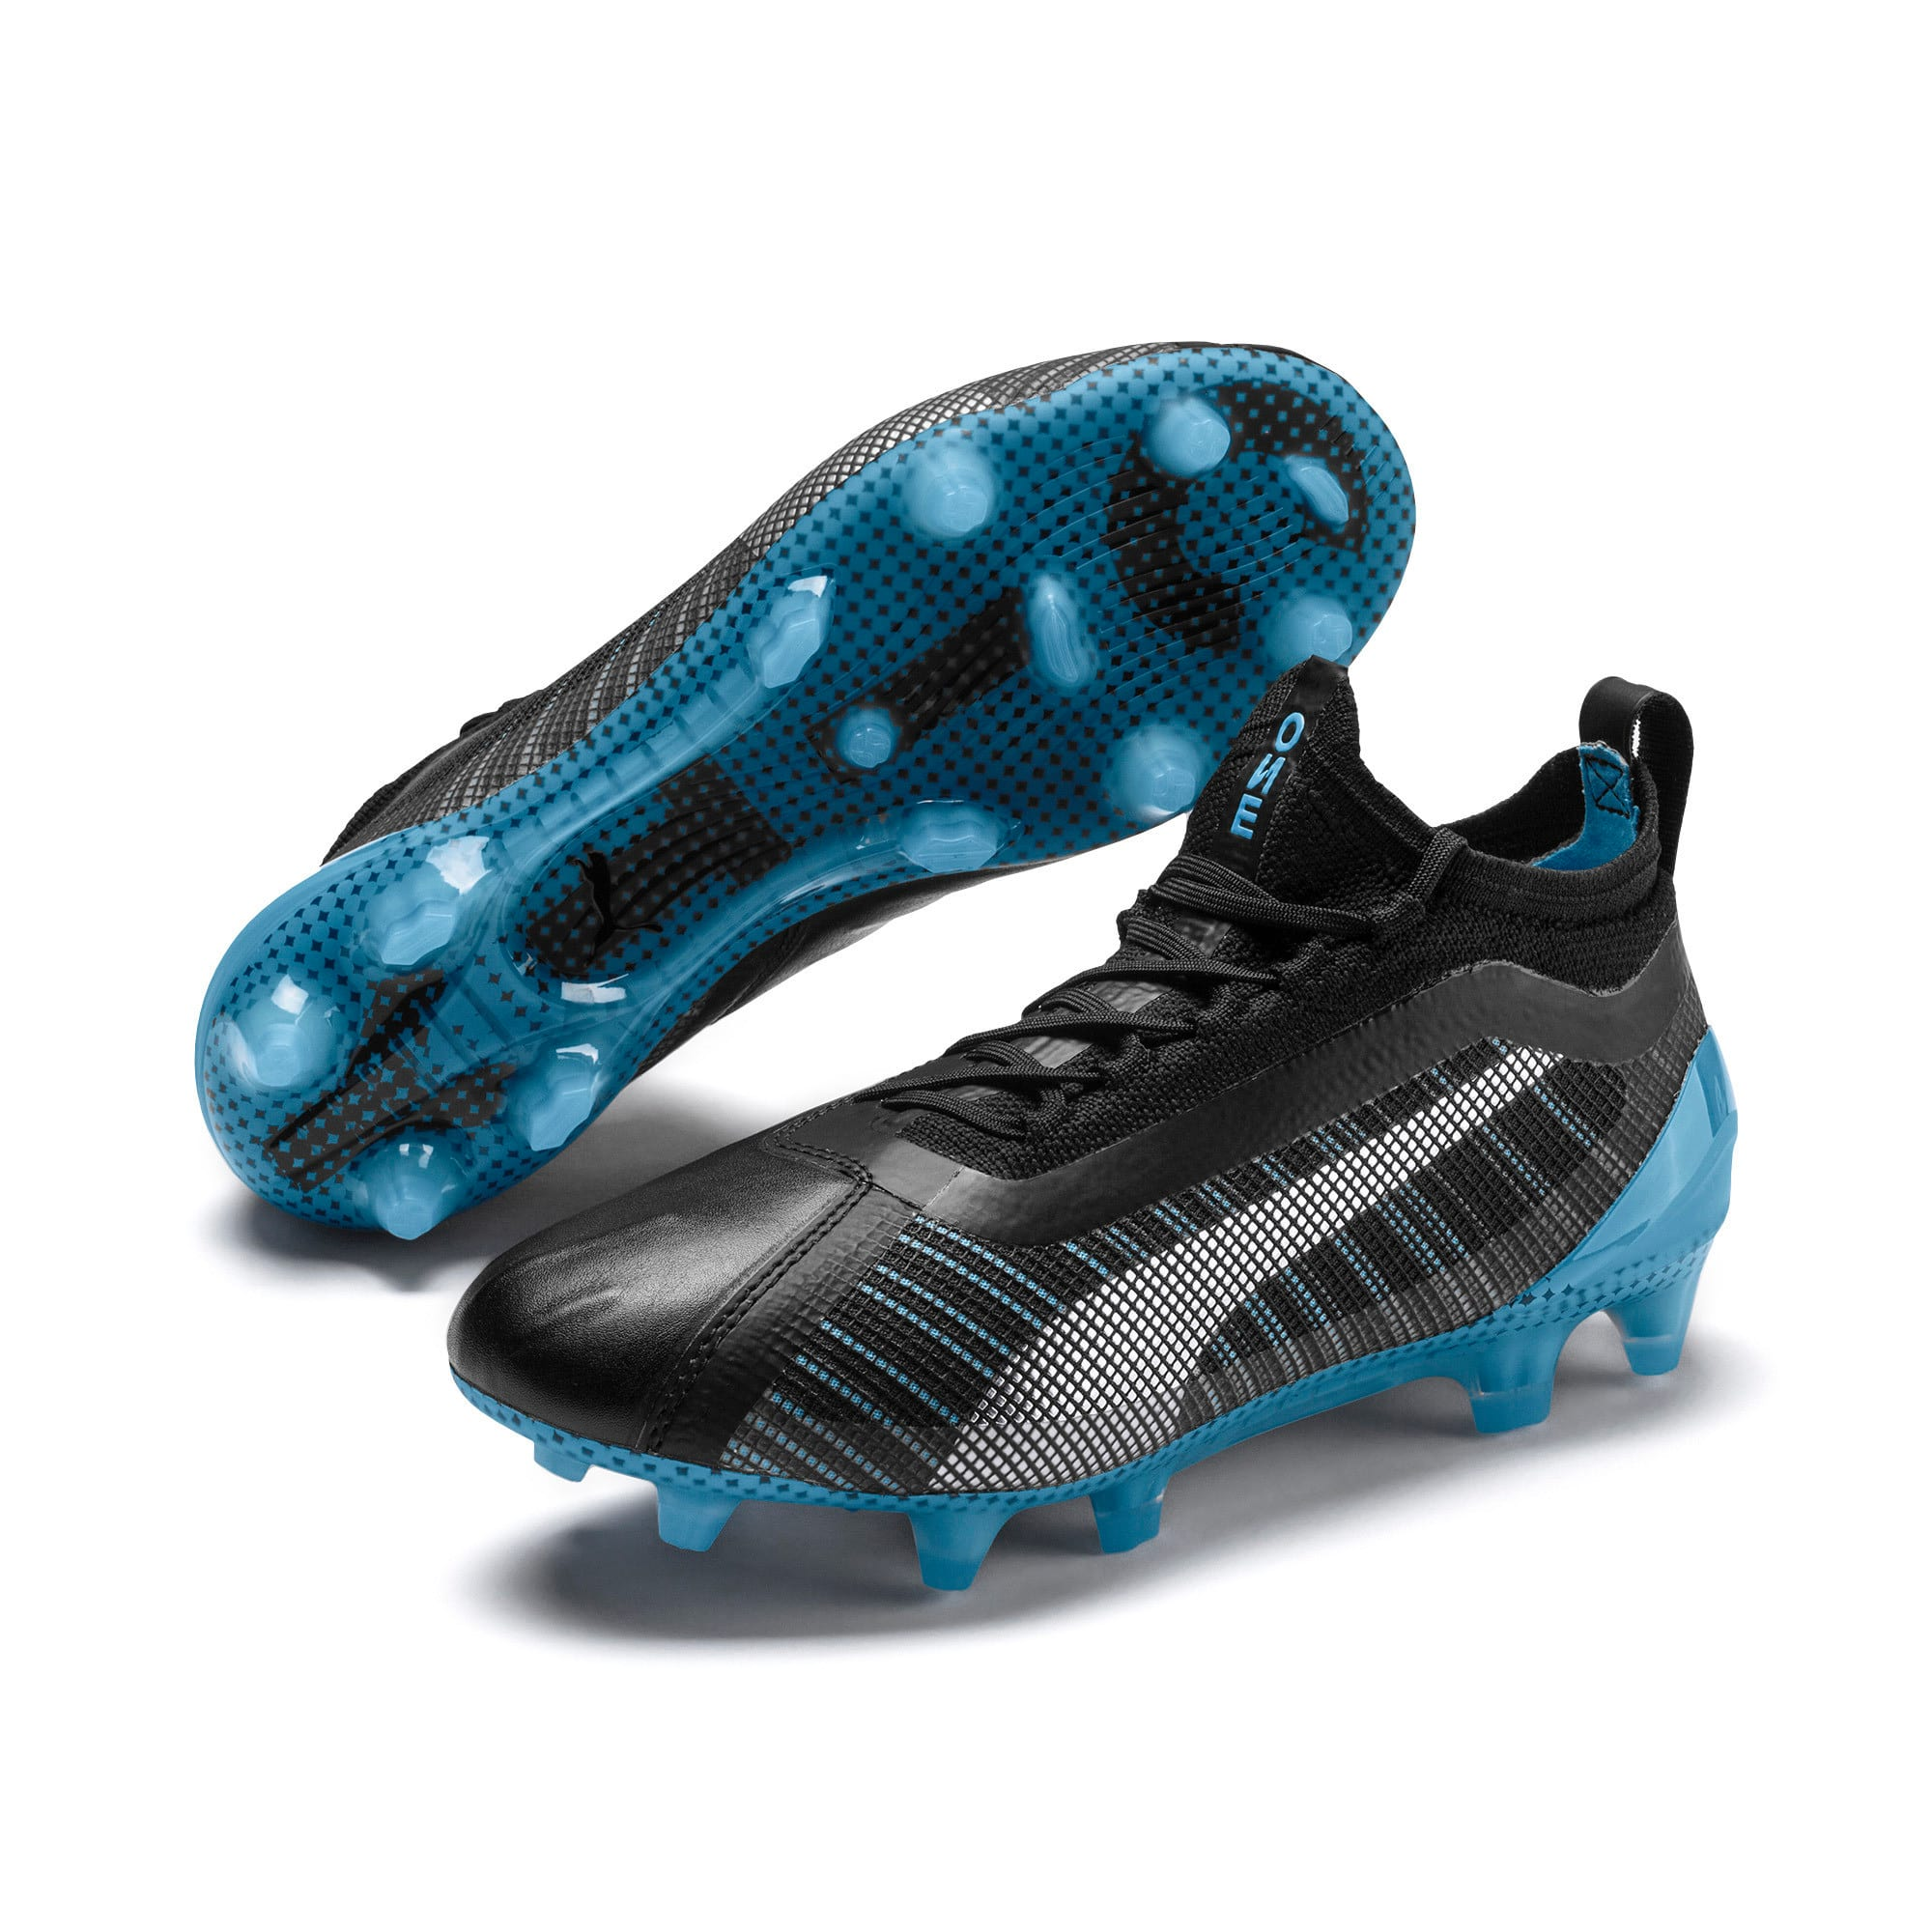 Thumbnail 2 of PUMA ONE 5.1 City Youth Football Boots, Black-Sky Blue-Puma White, medium